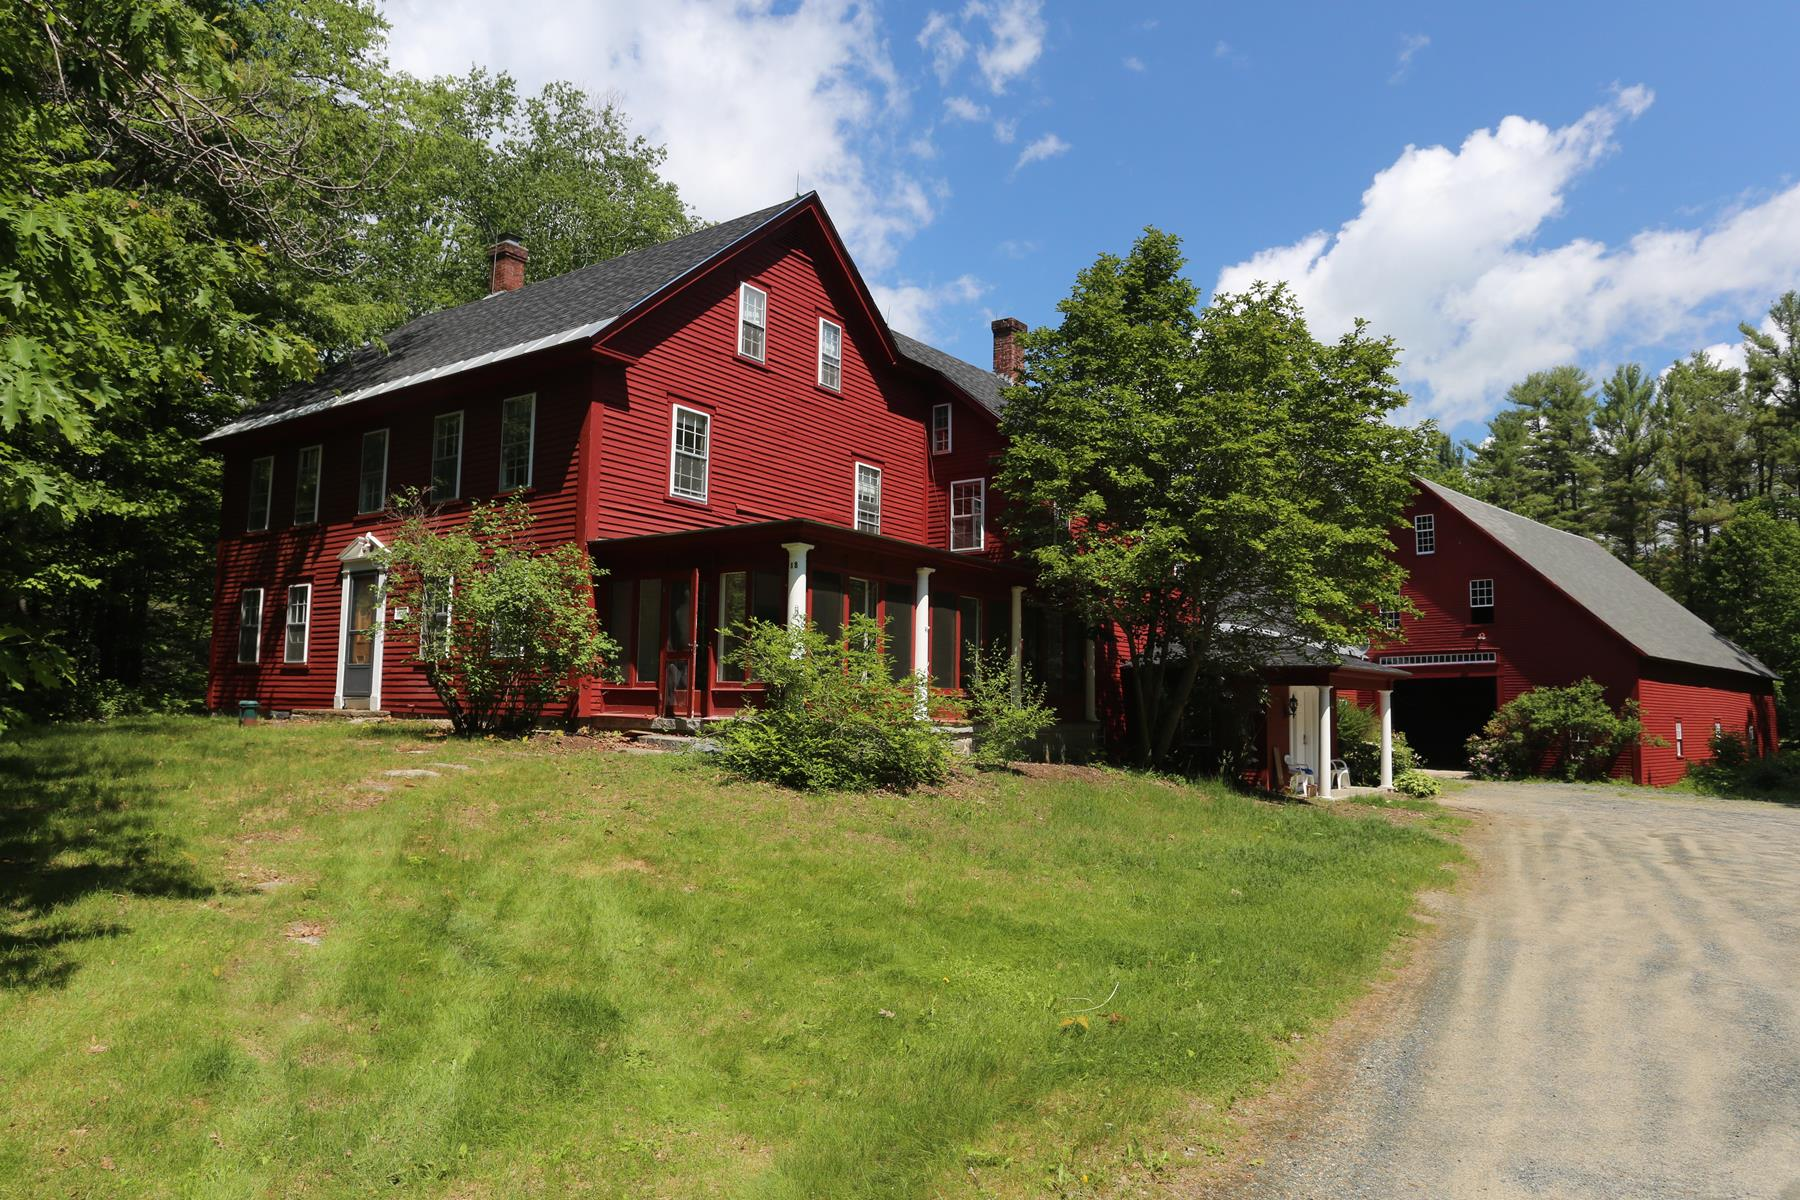 Single Family Home for Sale at 88 Otterville Road, New London 88 Otterville Rd New London, New Hampshire, 03257 United States